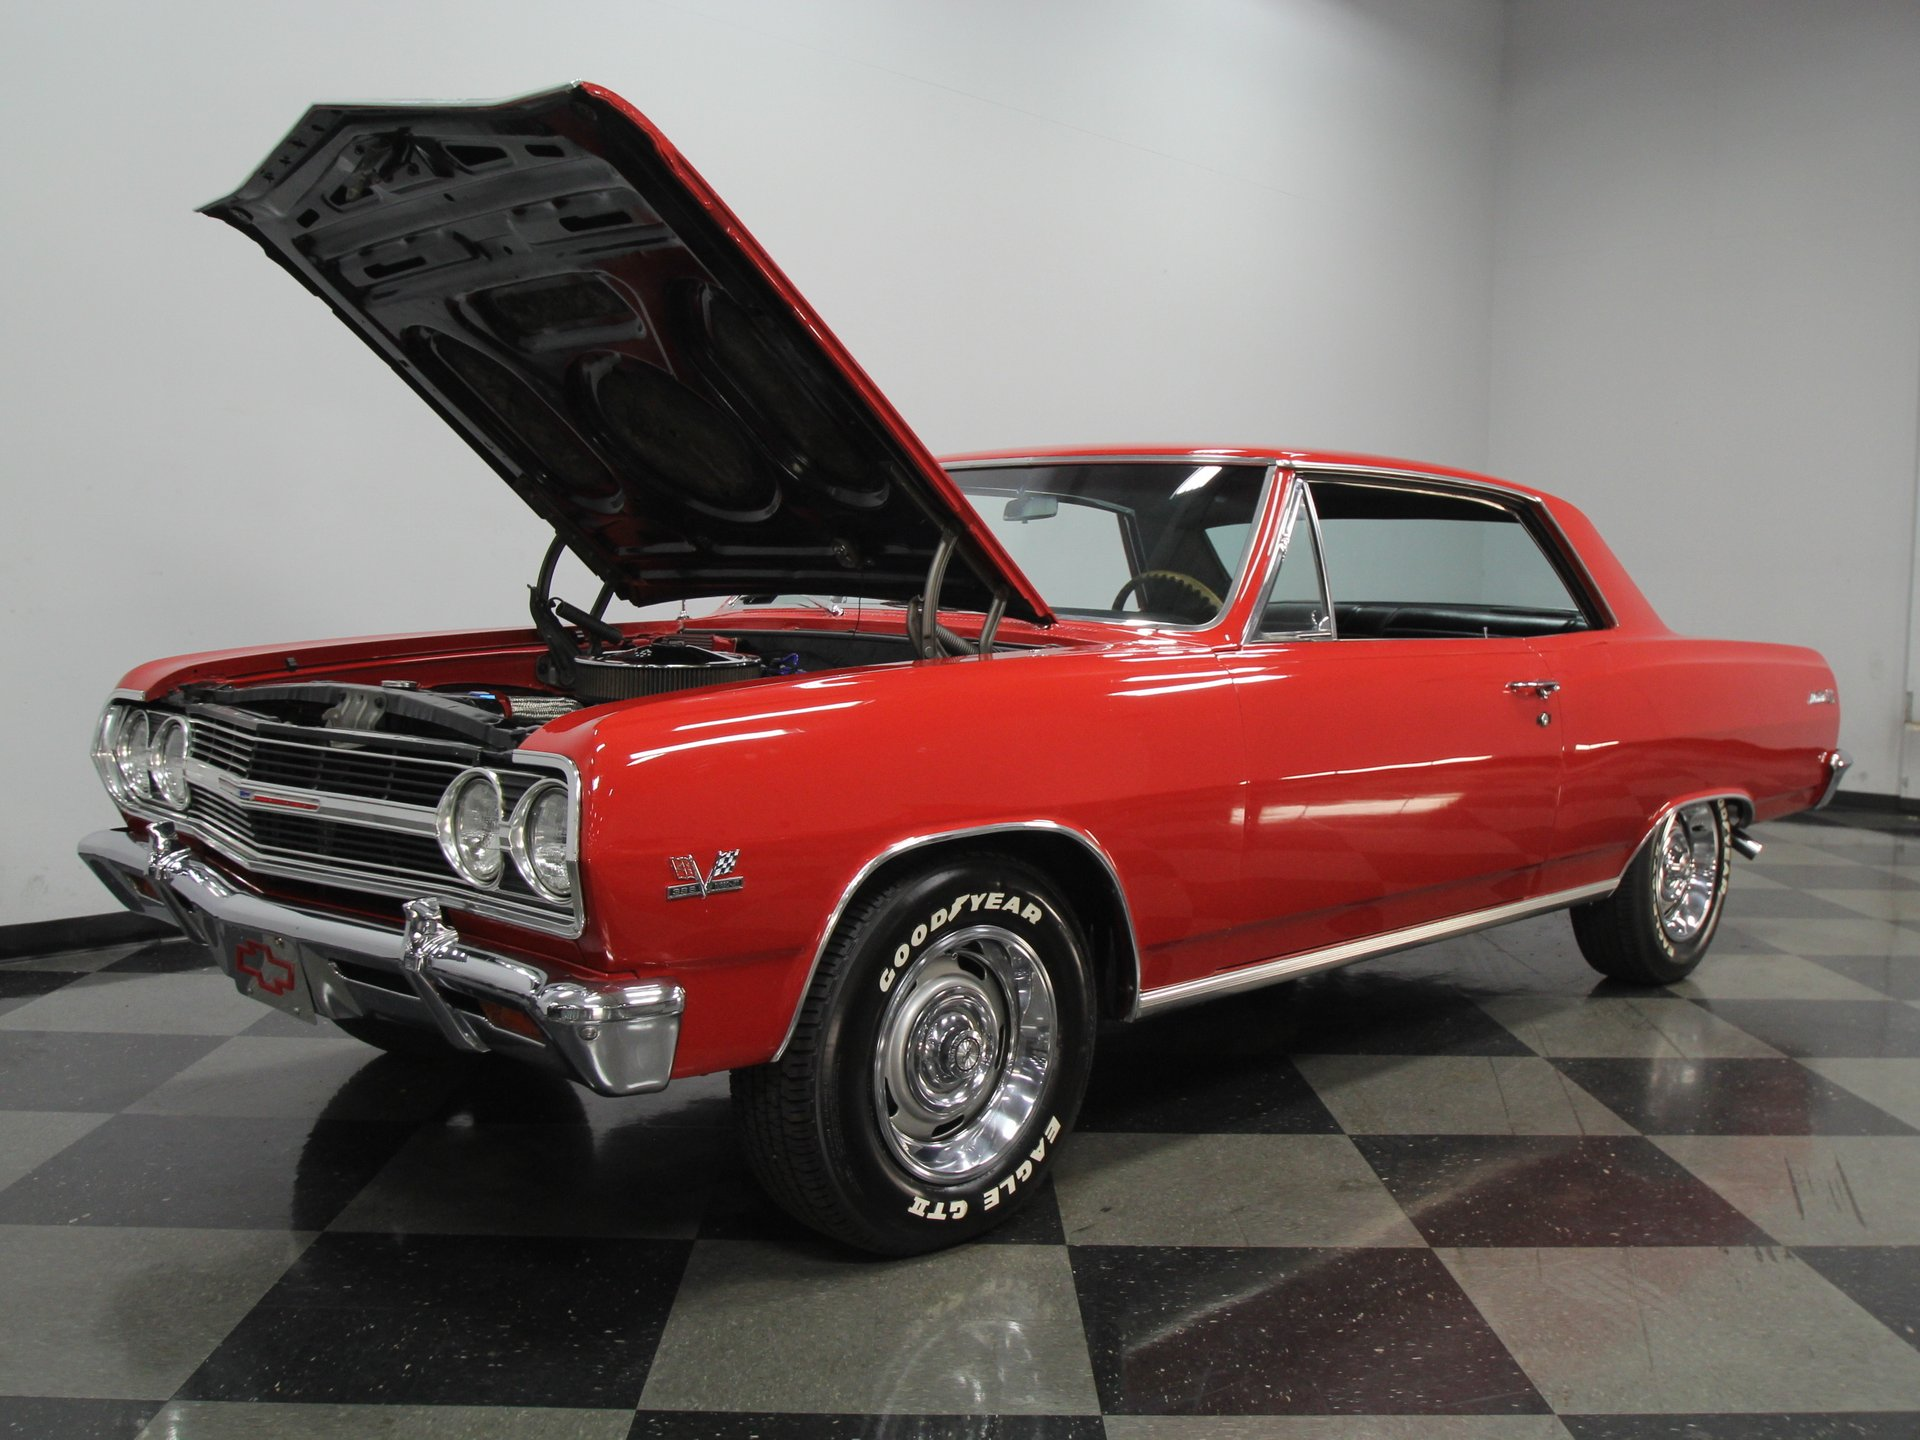 1965 Chevrolet Chevelle | Streetside Classics - The Nation's